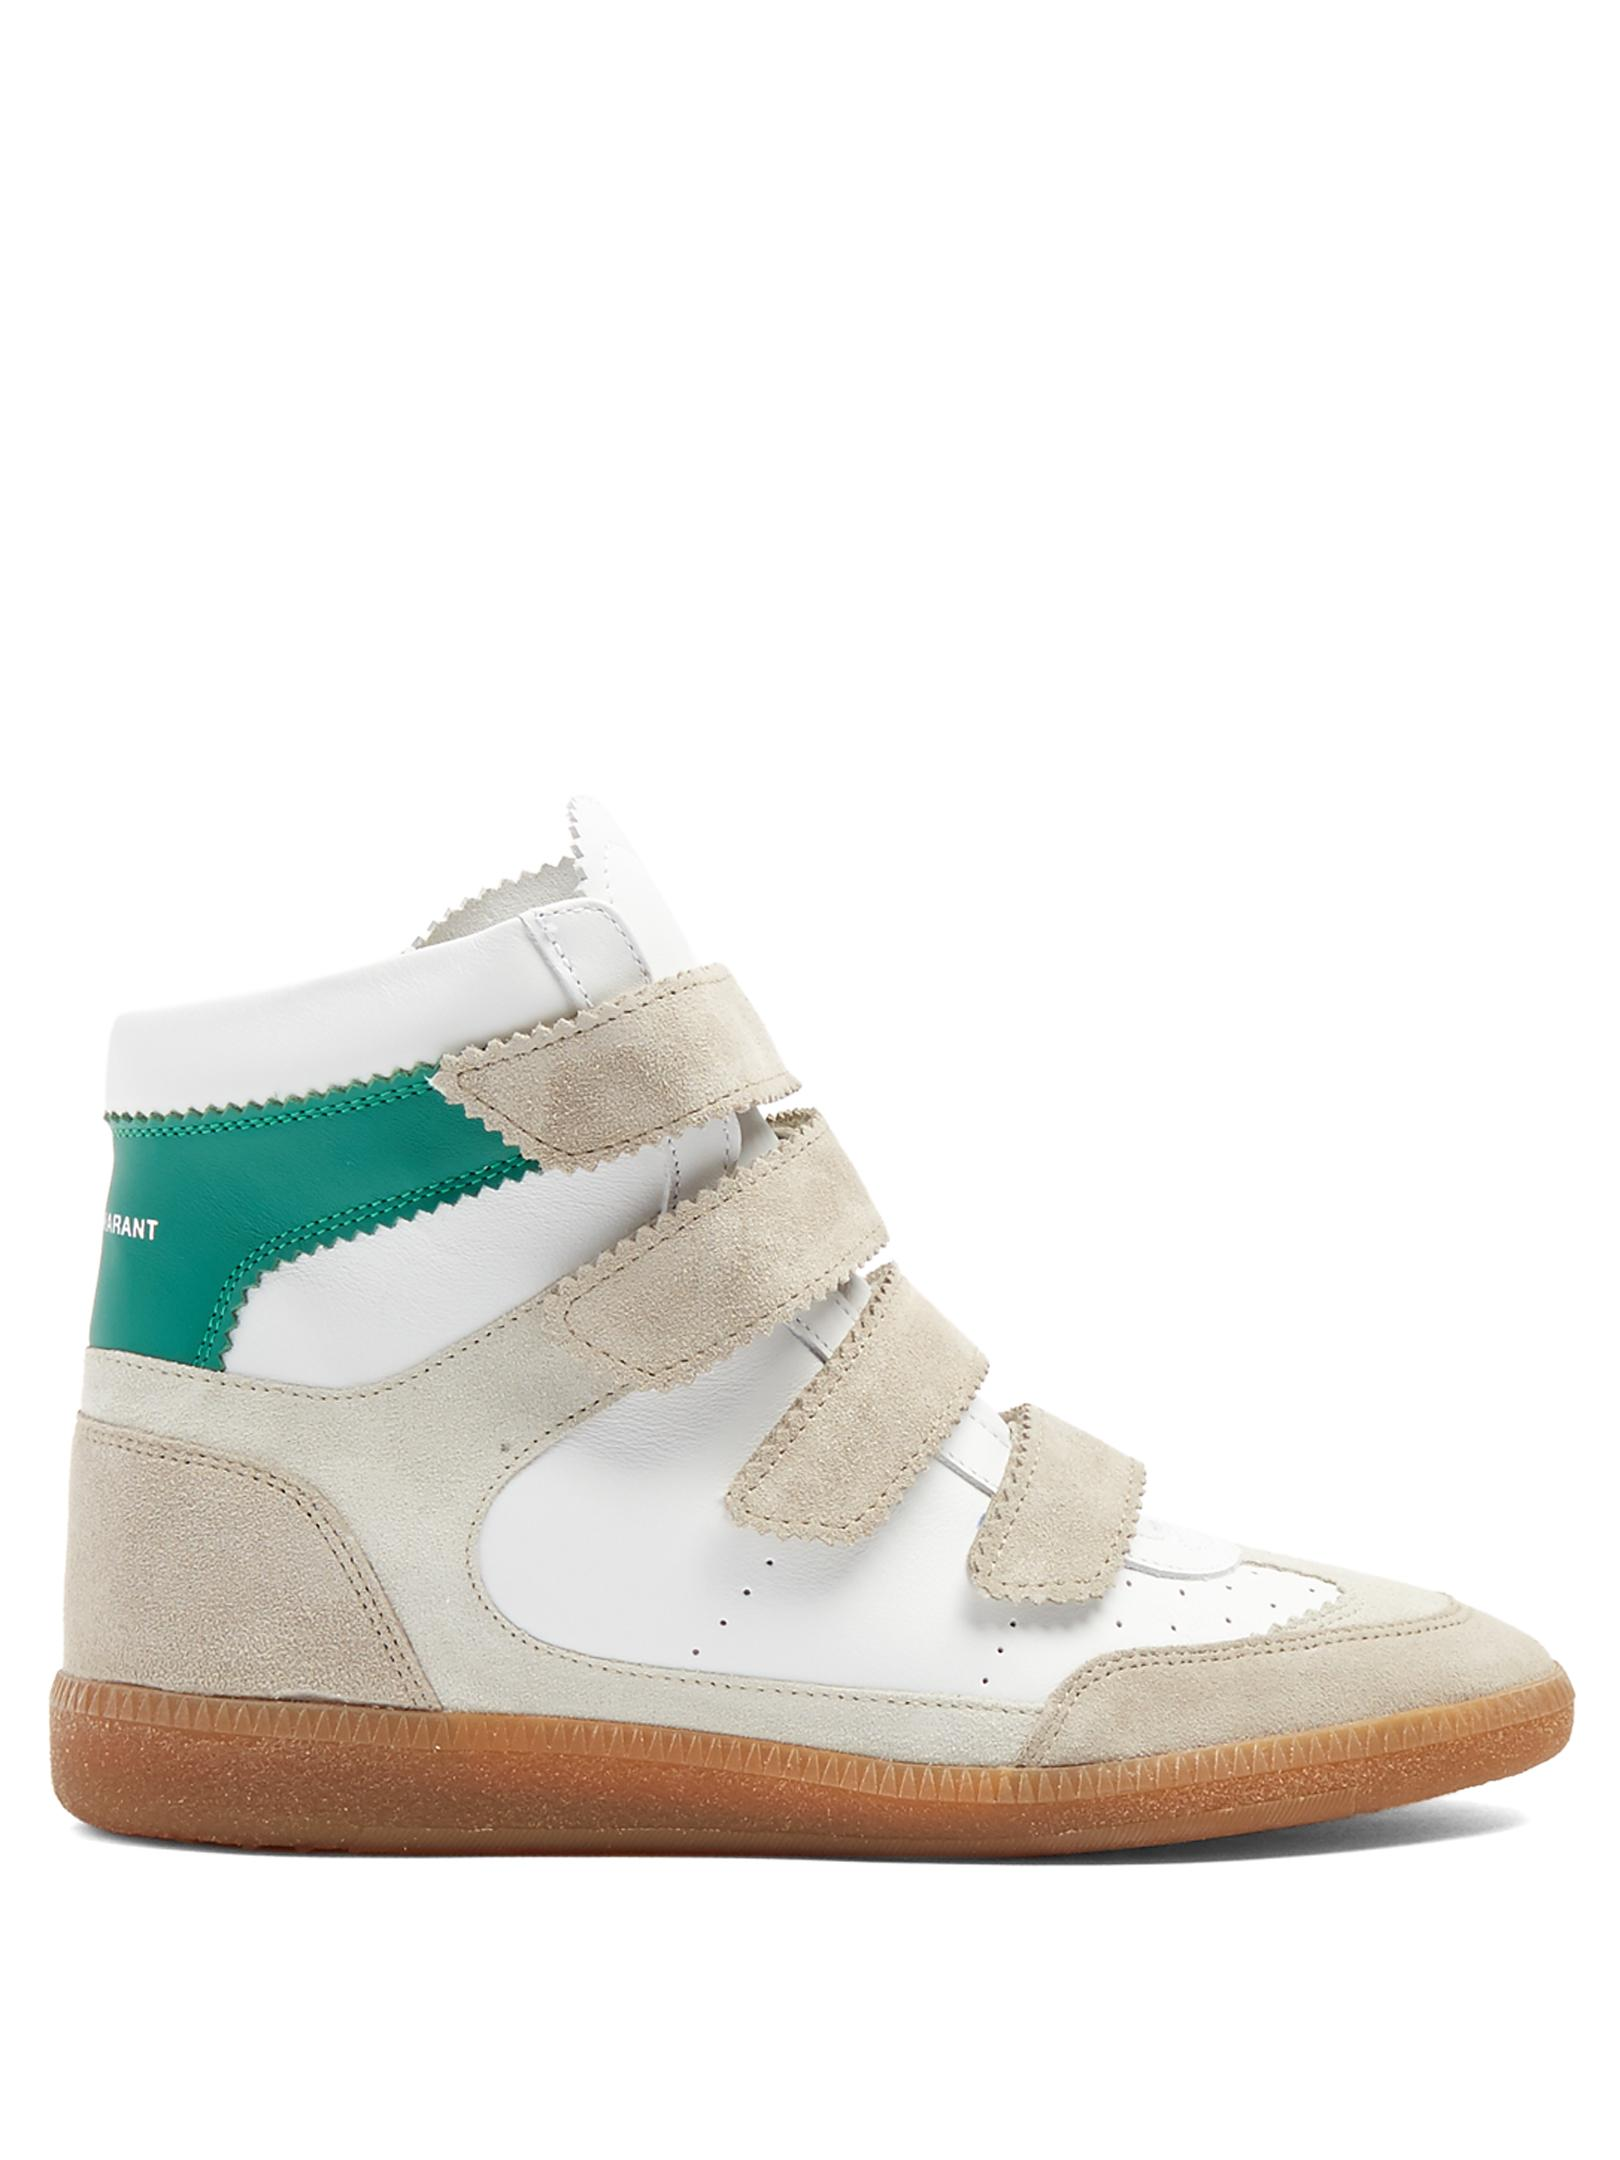 Bilsy embellished concealed-wedge leather trainers Isabel Marant Cheap Best Prices Free Shipping Footaction 2kiPQwcV